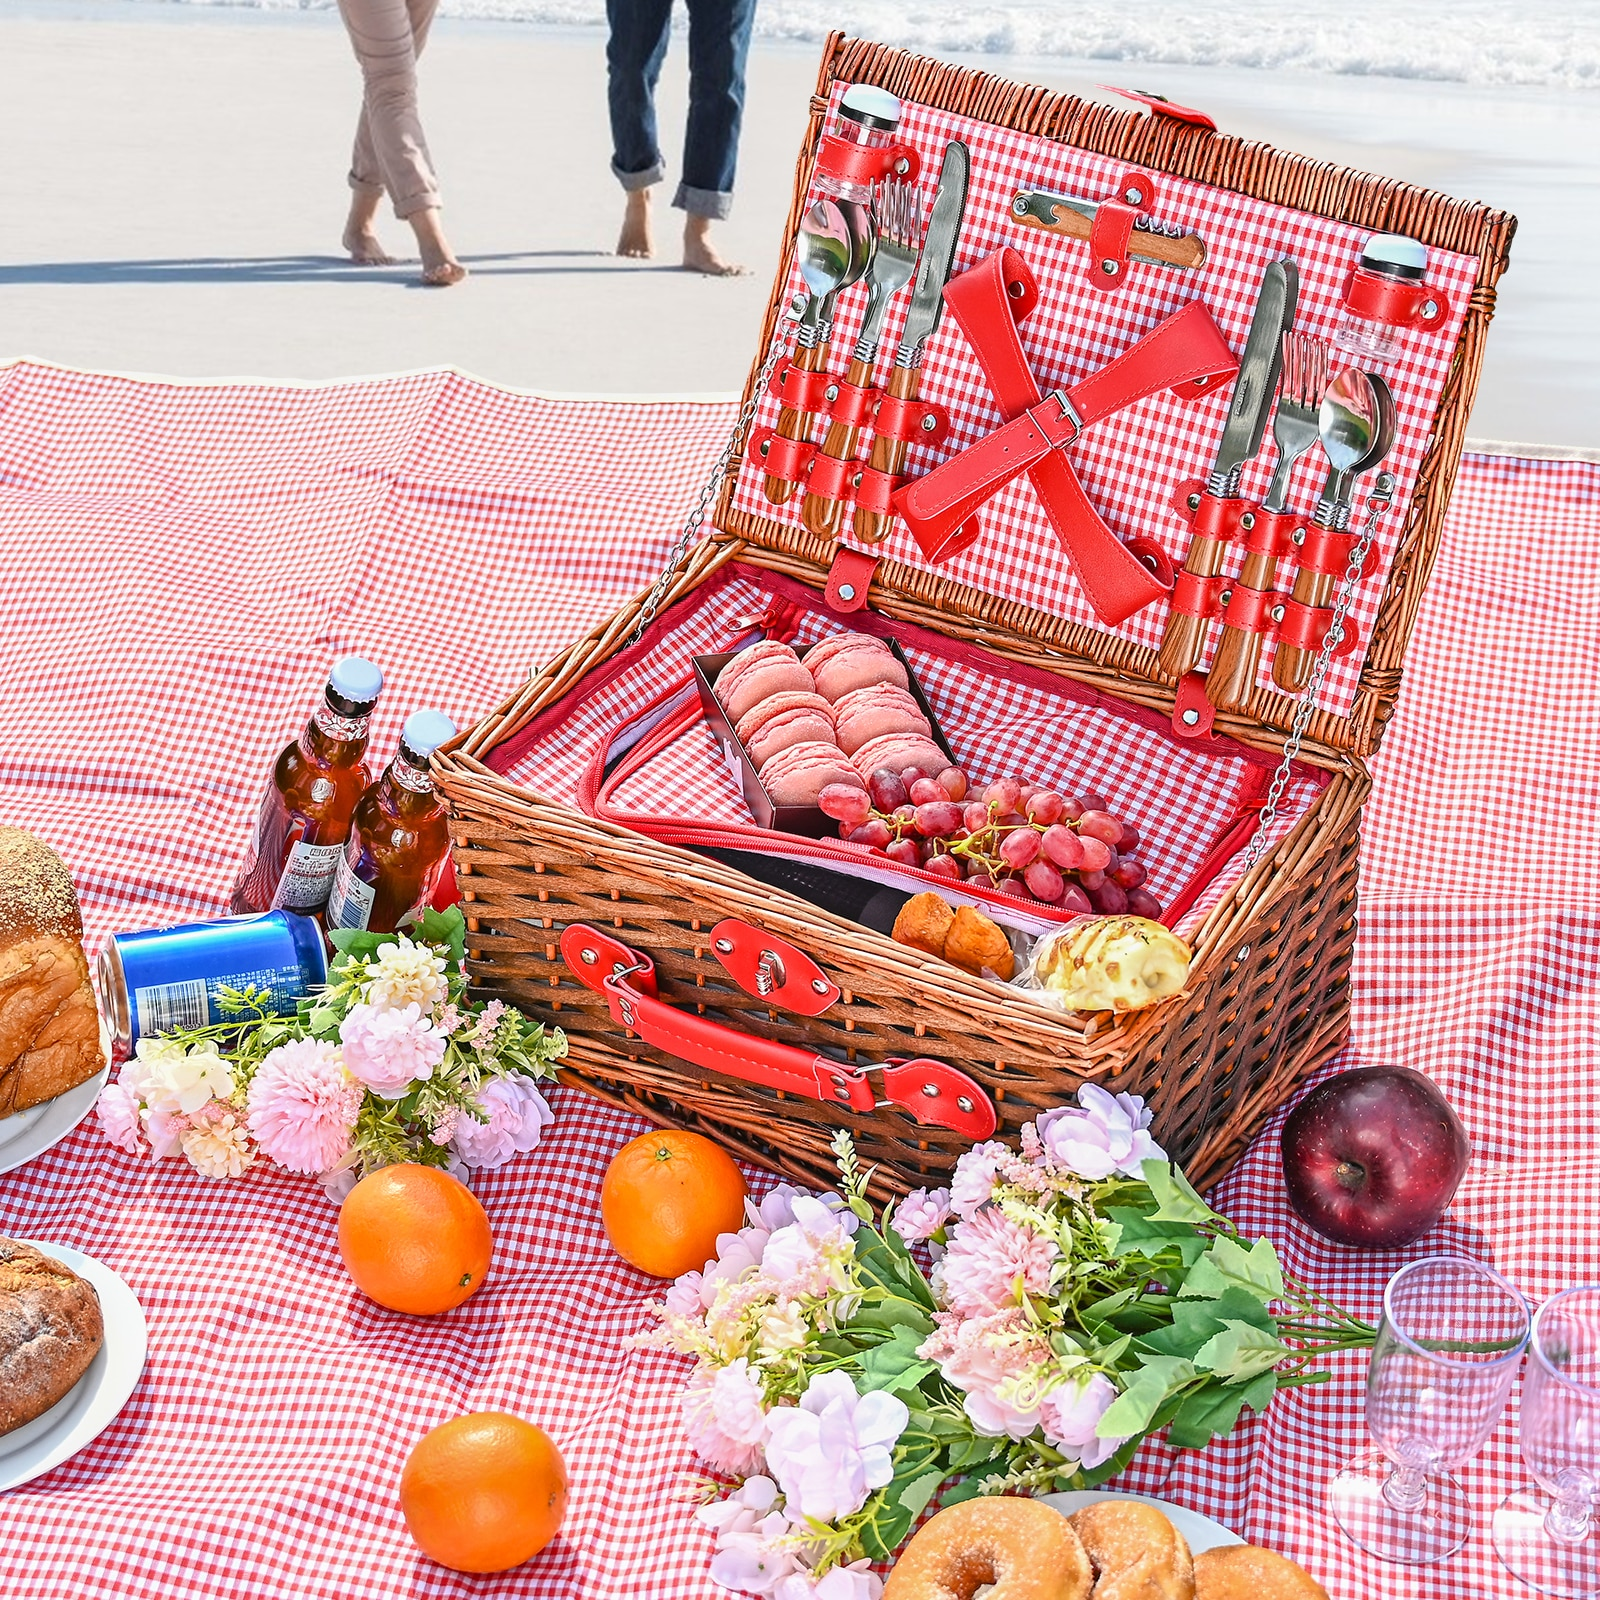 Picnic Basket Set Suitable For 2/4 People Wicker Picnic Basket Outdoor Camping Lunch Box Set With Cutlery For Picnics By Lake